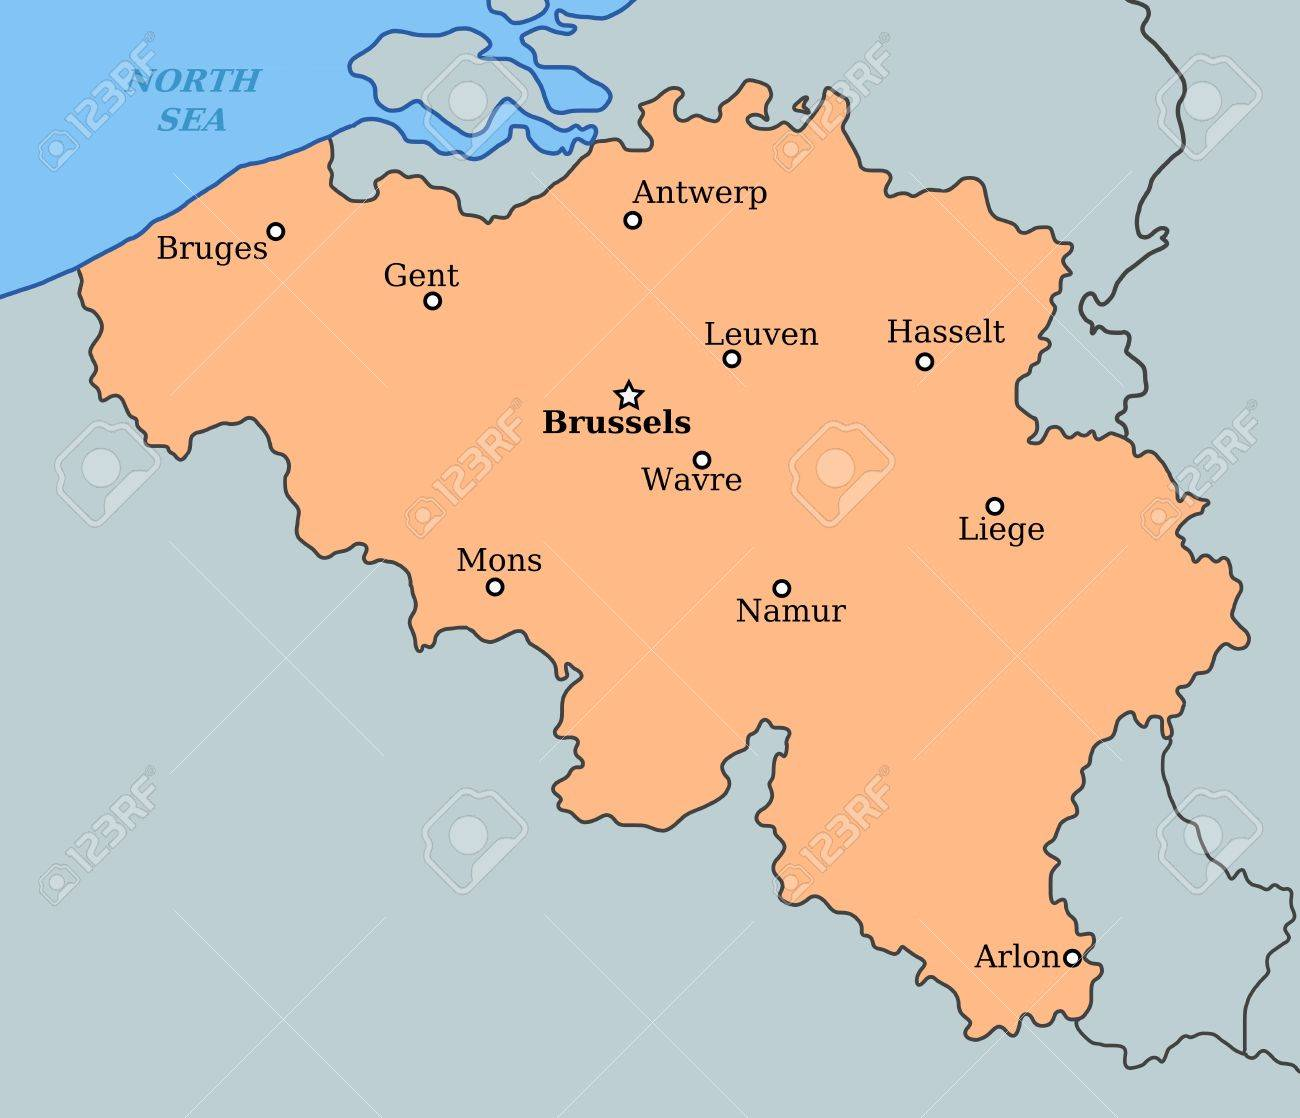 Map Of Belgium With Major Cities Brussels Bruges Antwerp – Map of Belgium with Cities